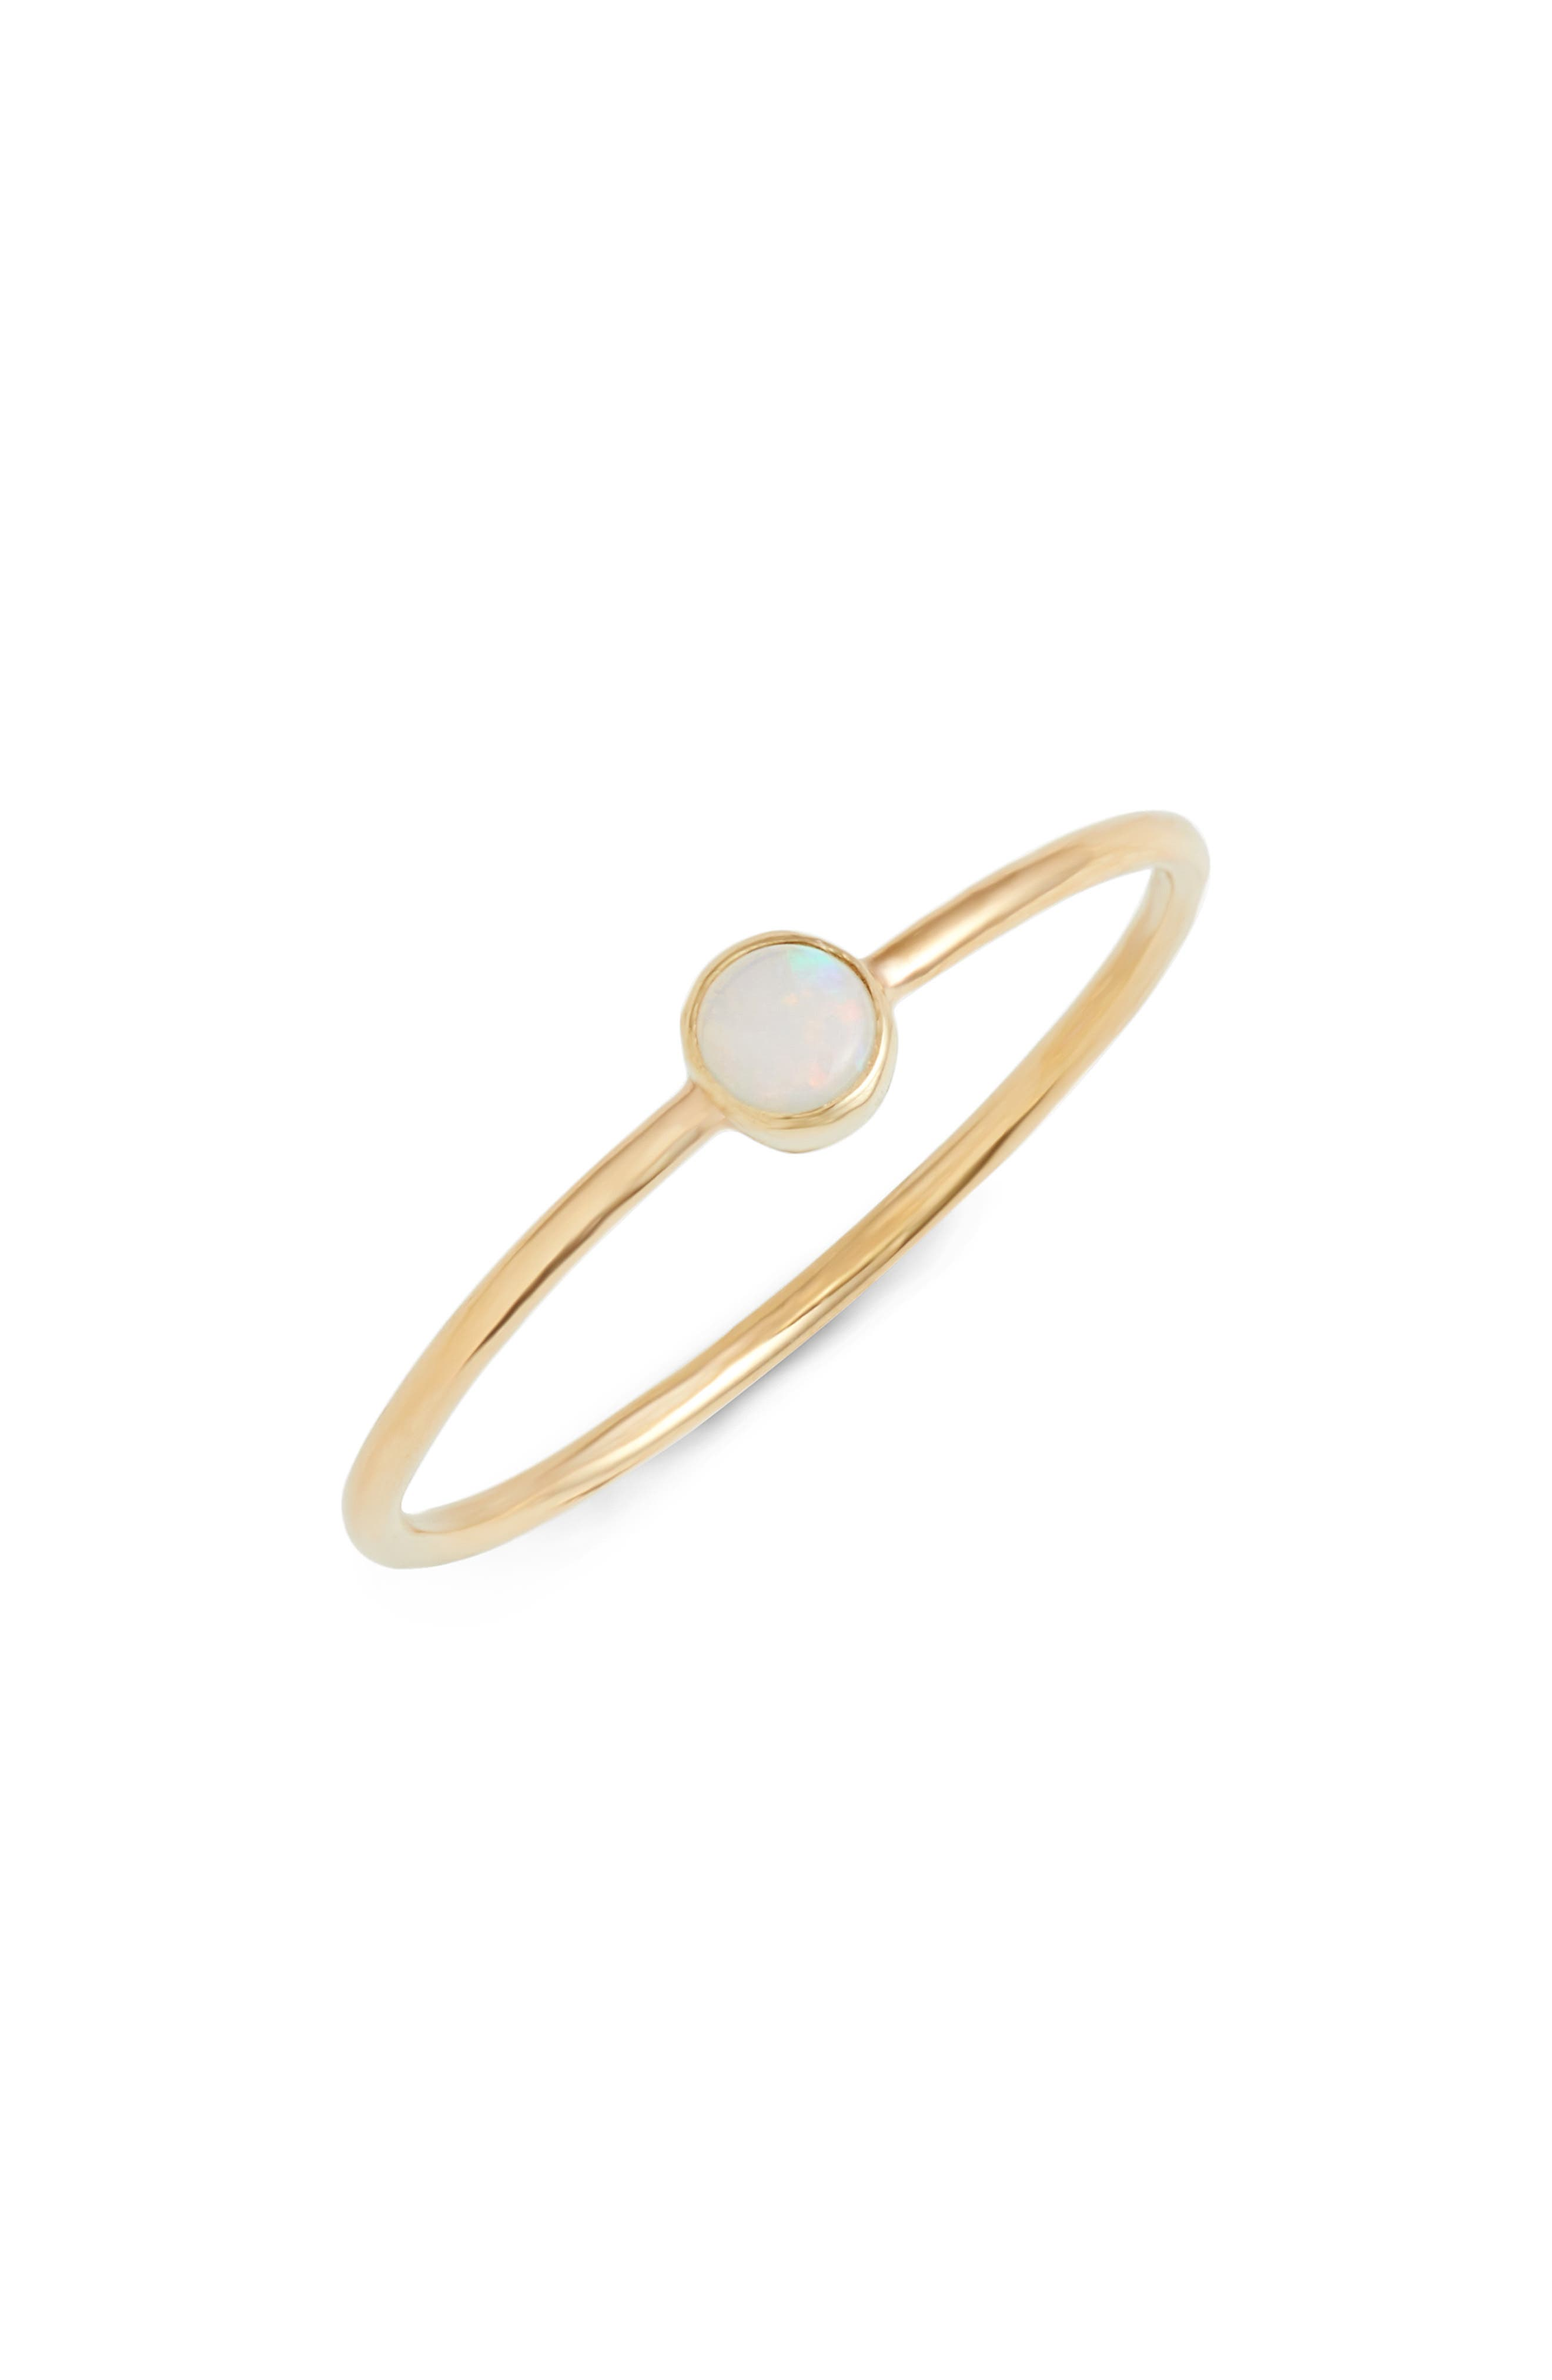 ZOË CHICCO, Opal Stacking Ring, Main thumbnail 1, color, YELLOW GOLD/ OPAL